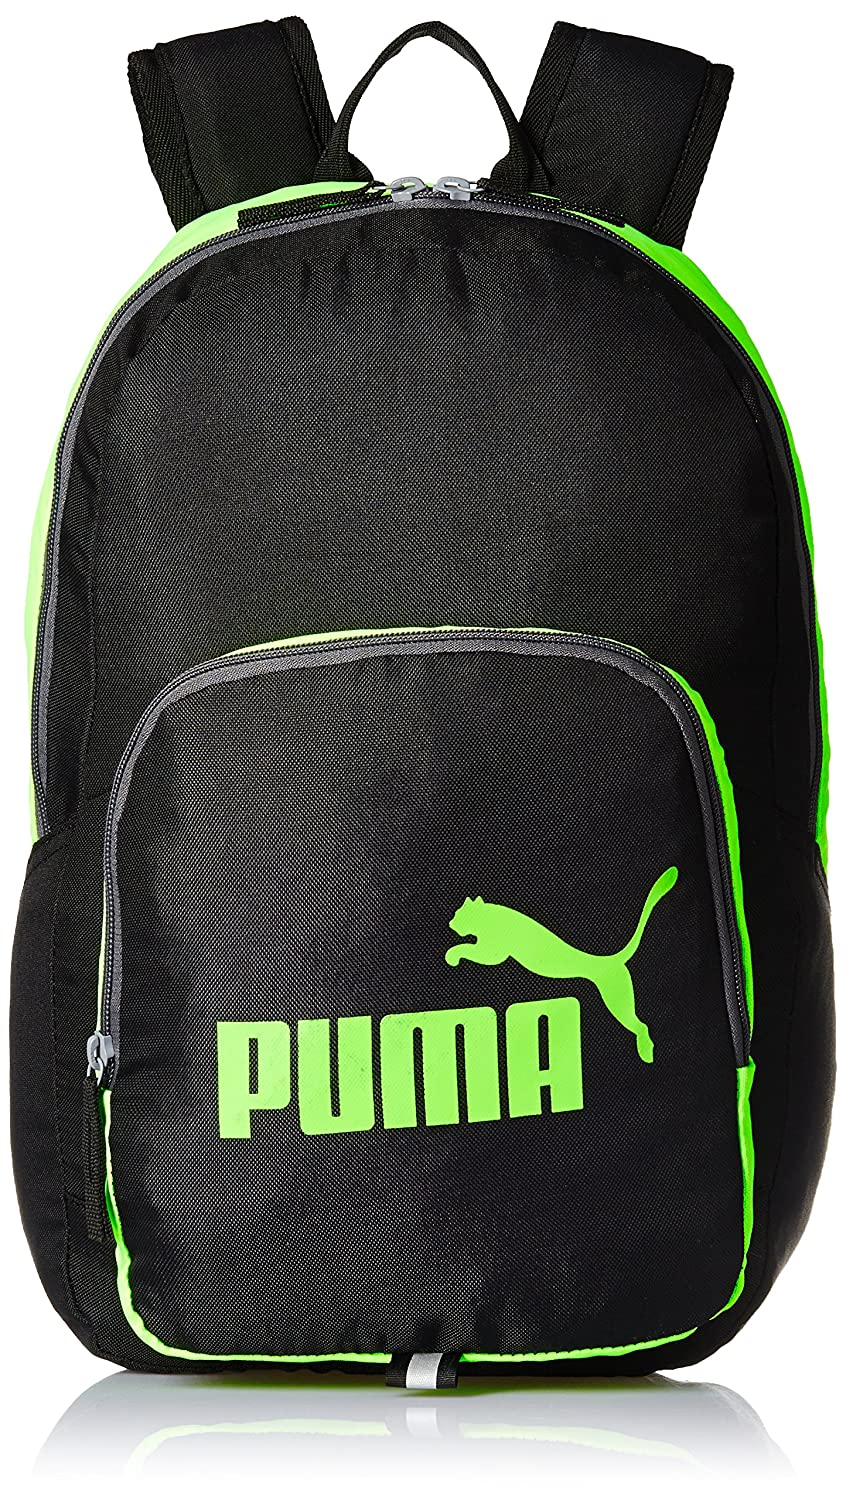 Puma 21 Ltrs Green Casual Backpack at Rs.384